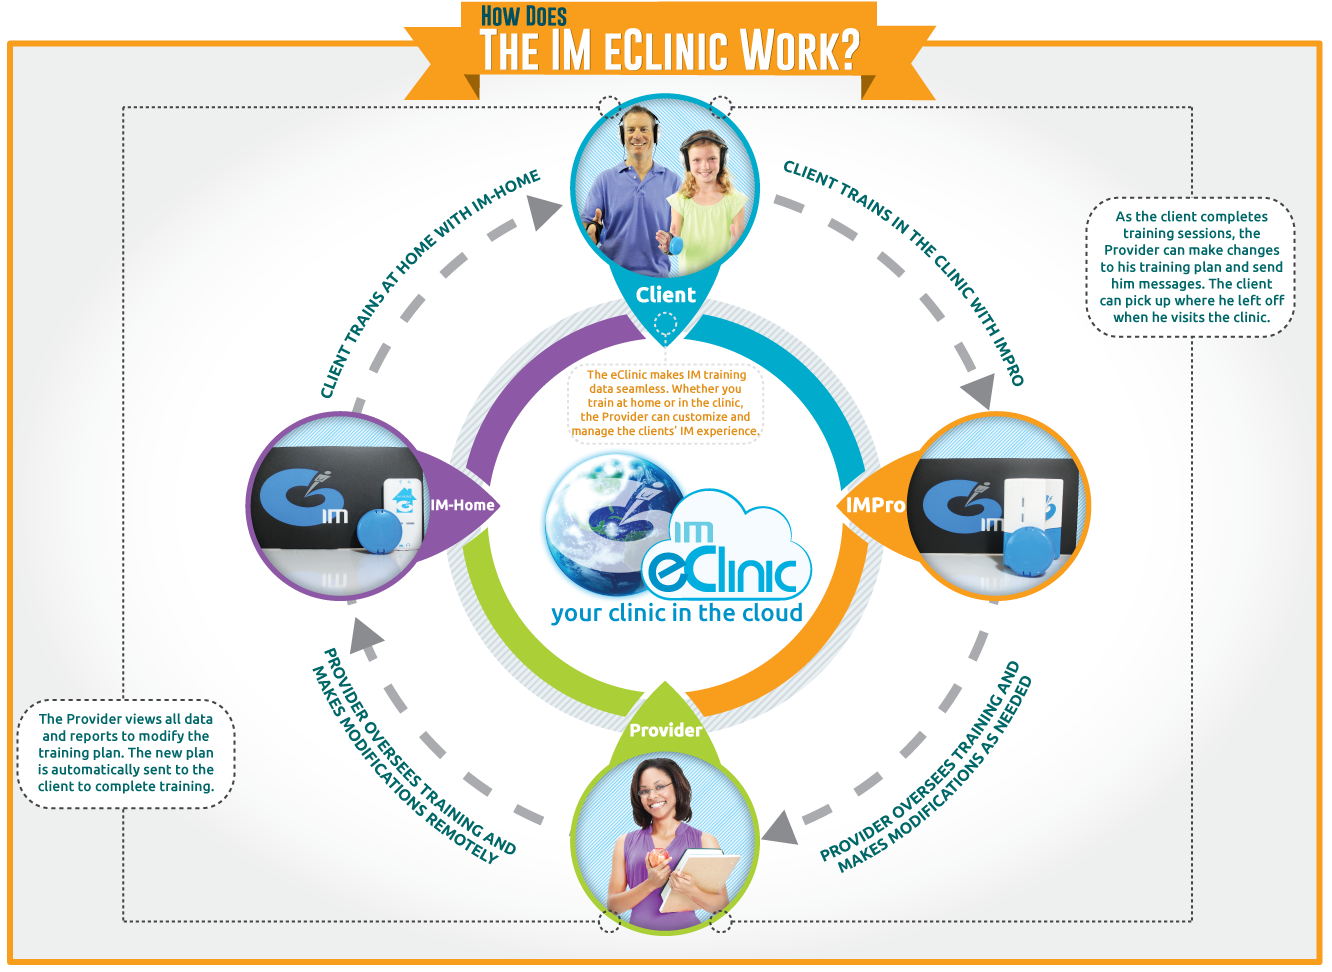 How does the IM eClinic work